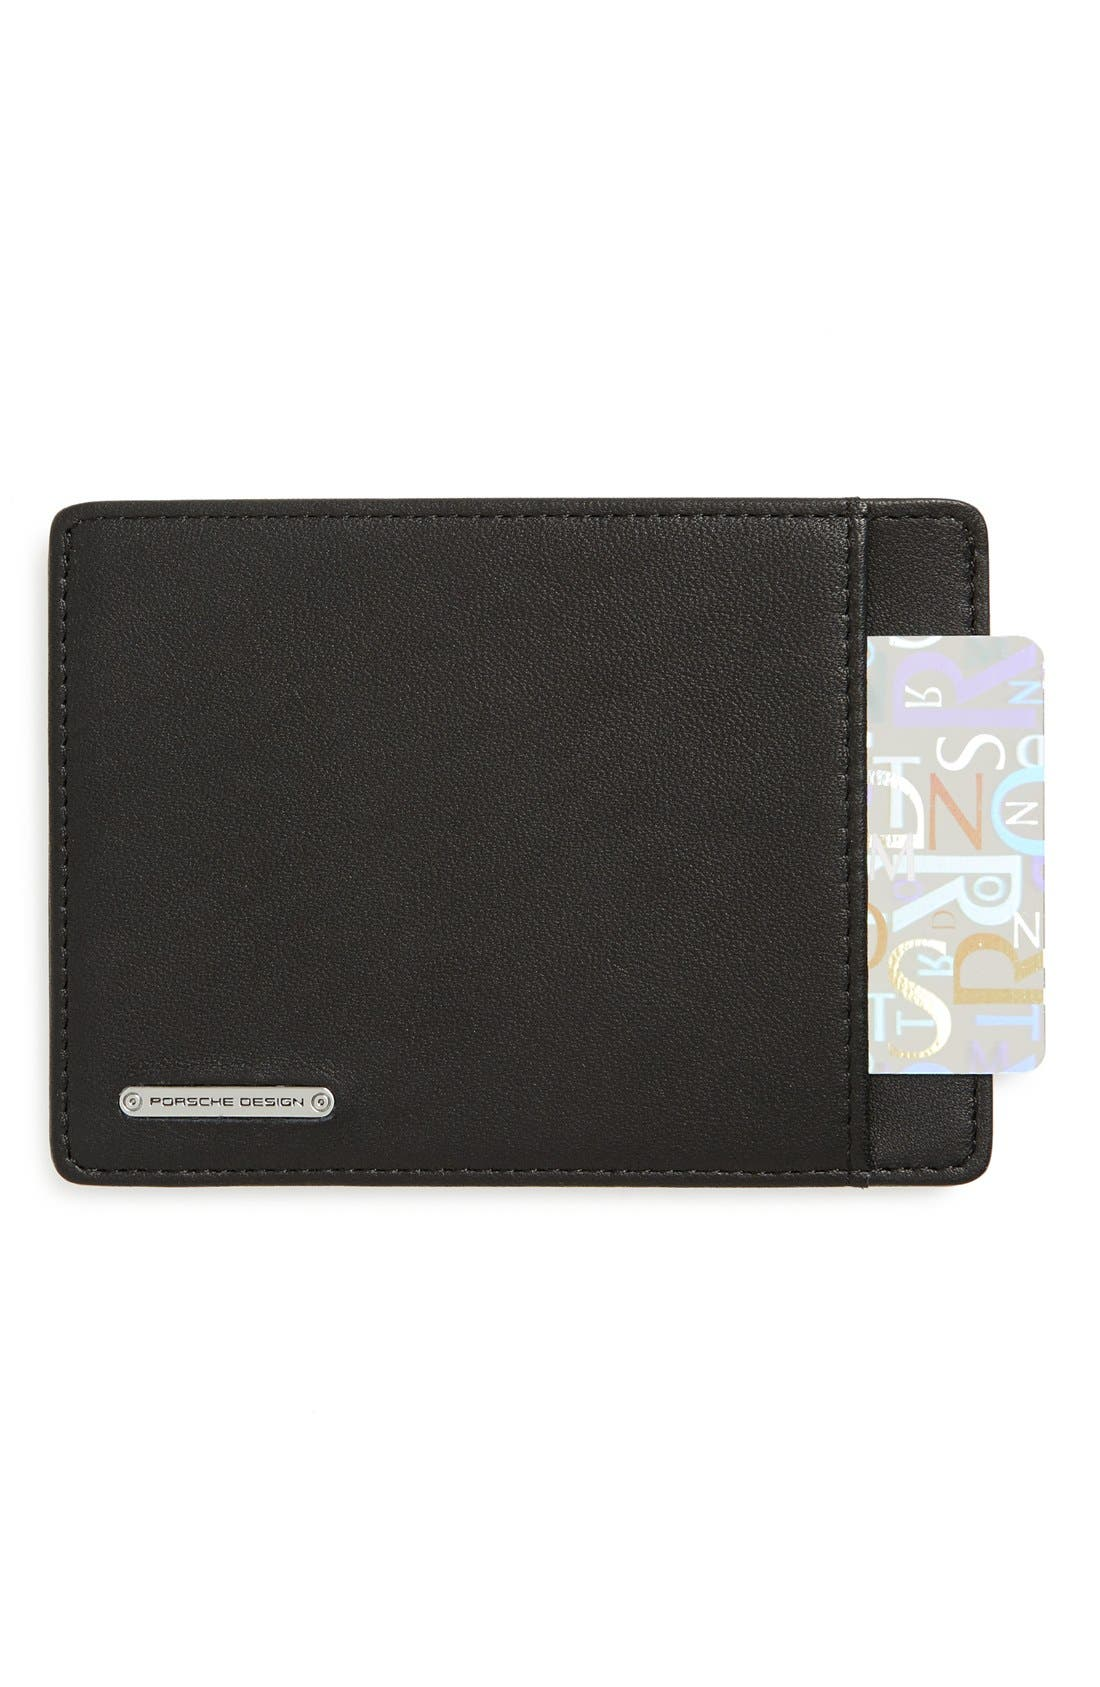 Porsche Design 'CL2 2.0' Leather Card Holder